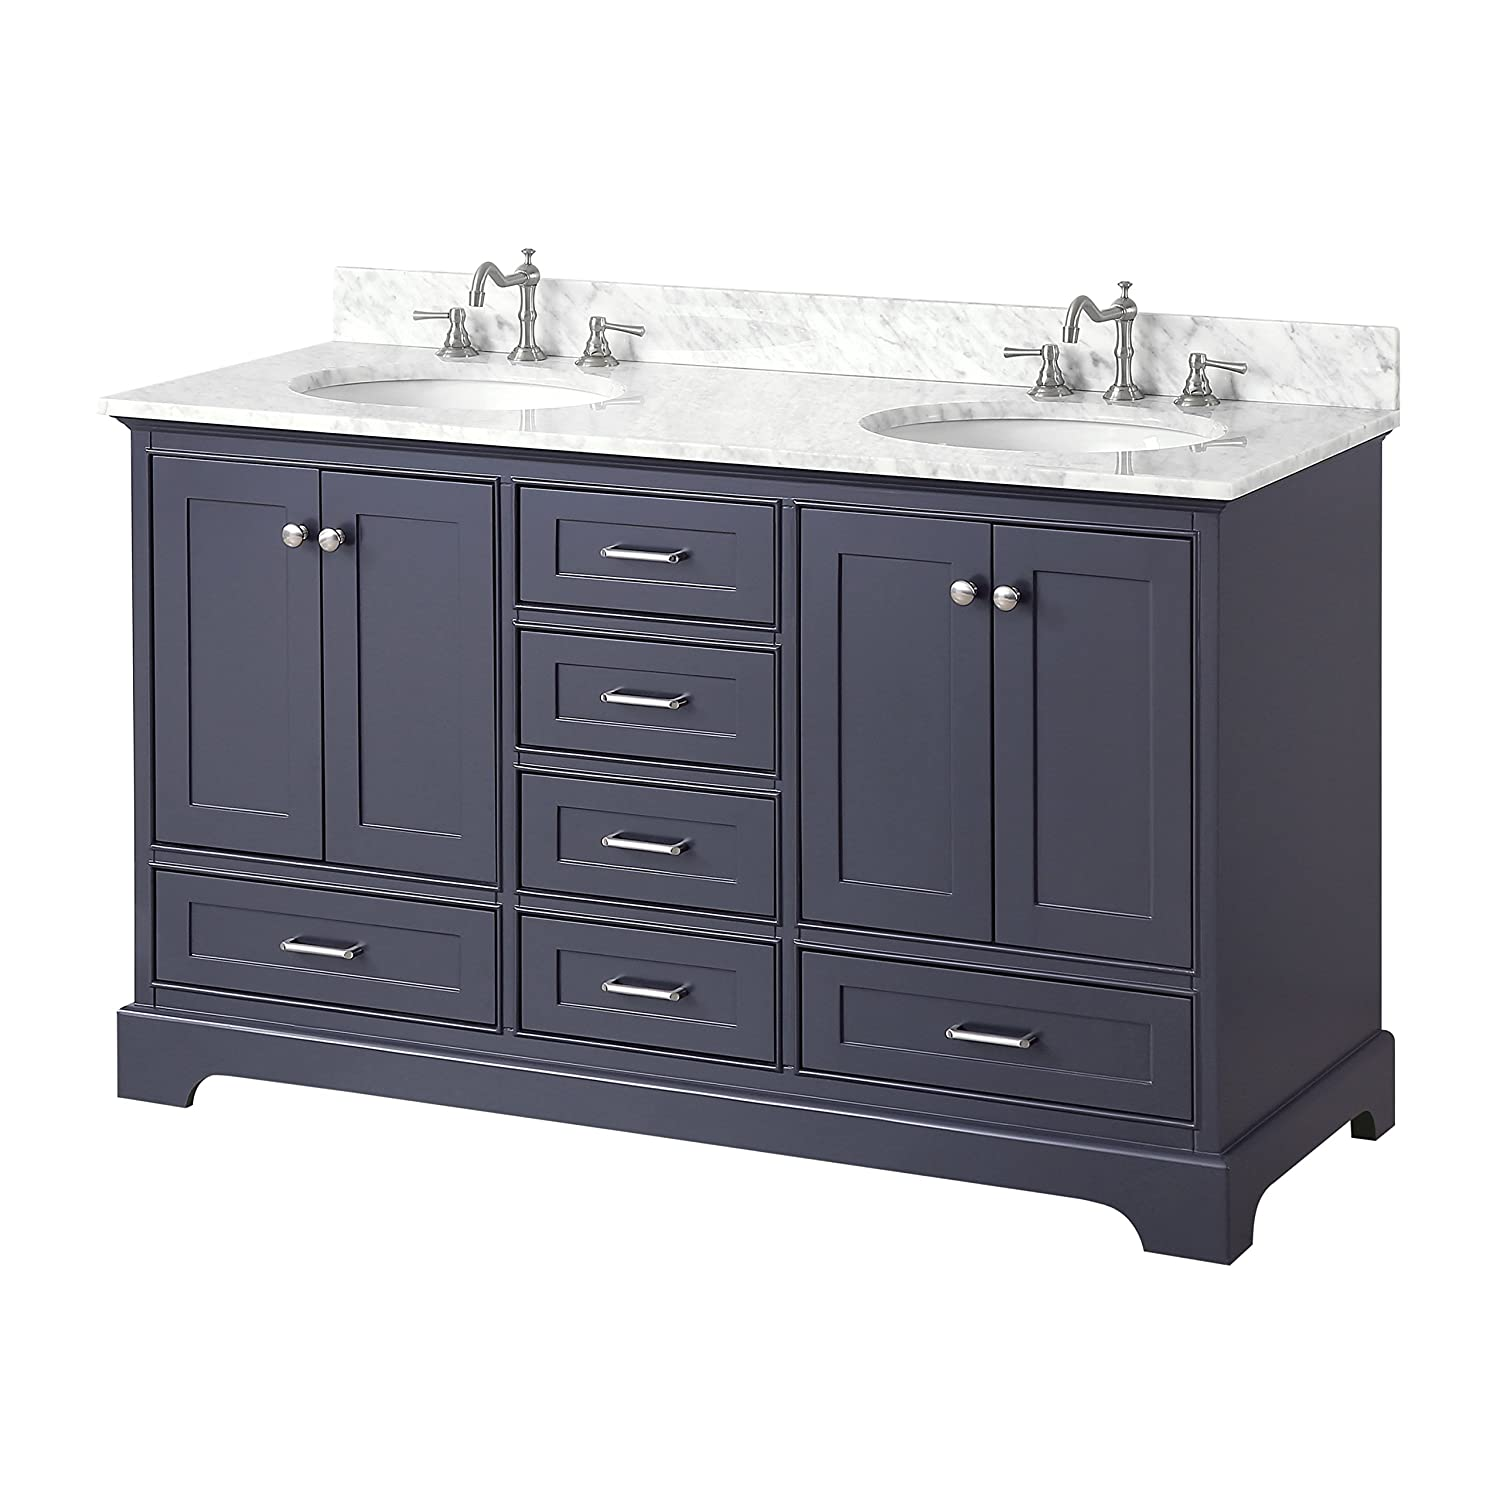 Harper 60 Inch Double Bathroom Vanity (Carrara/Charcoal Gray): Includes  Authentic Italian Carrara Marble Countertop, Charcoal Gray Cabinet With  Soft Close ...